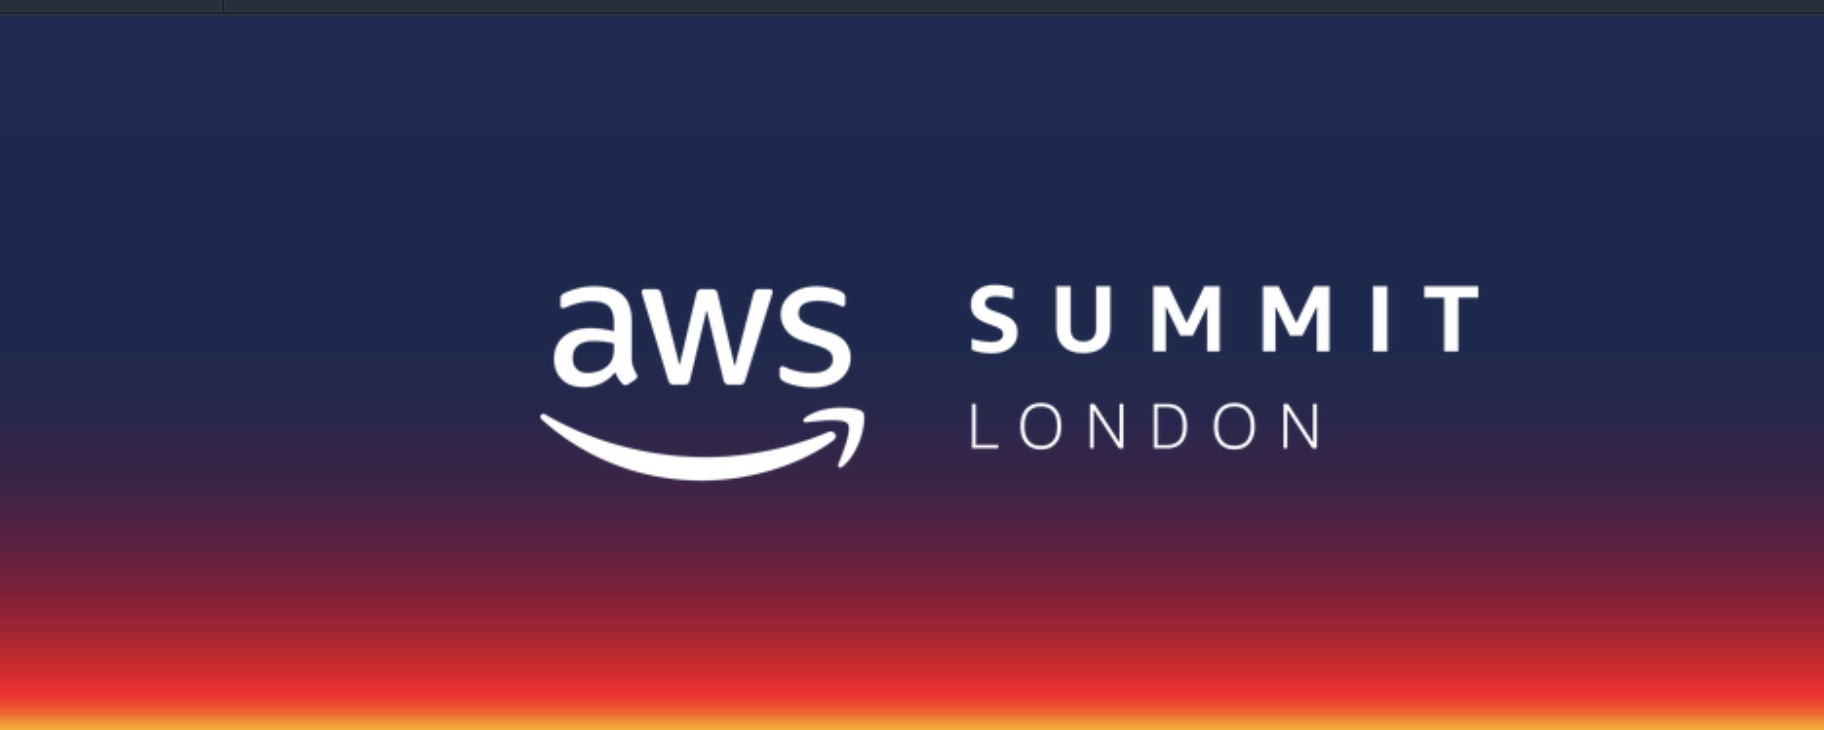 AWS London Summit logo